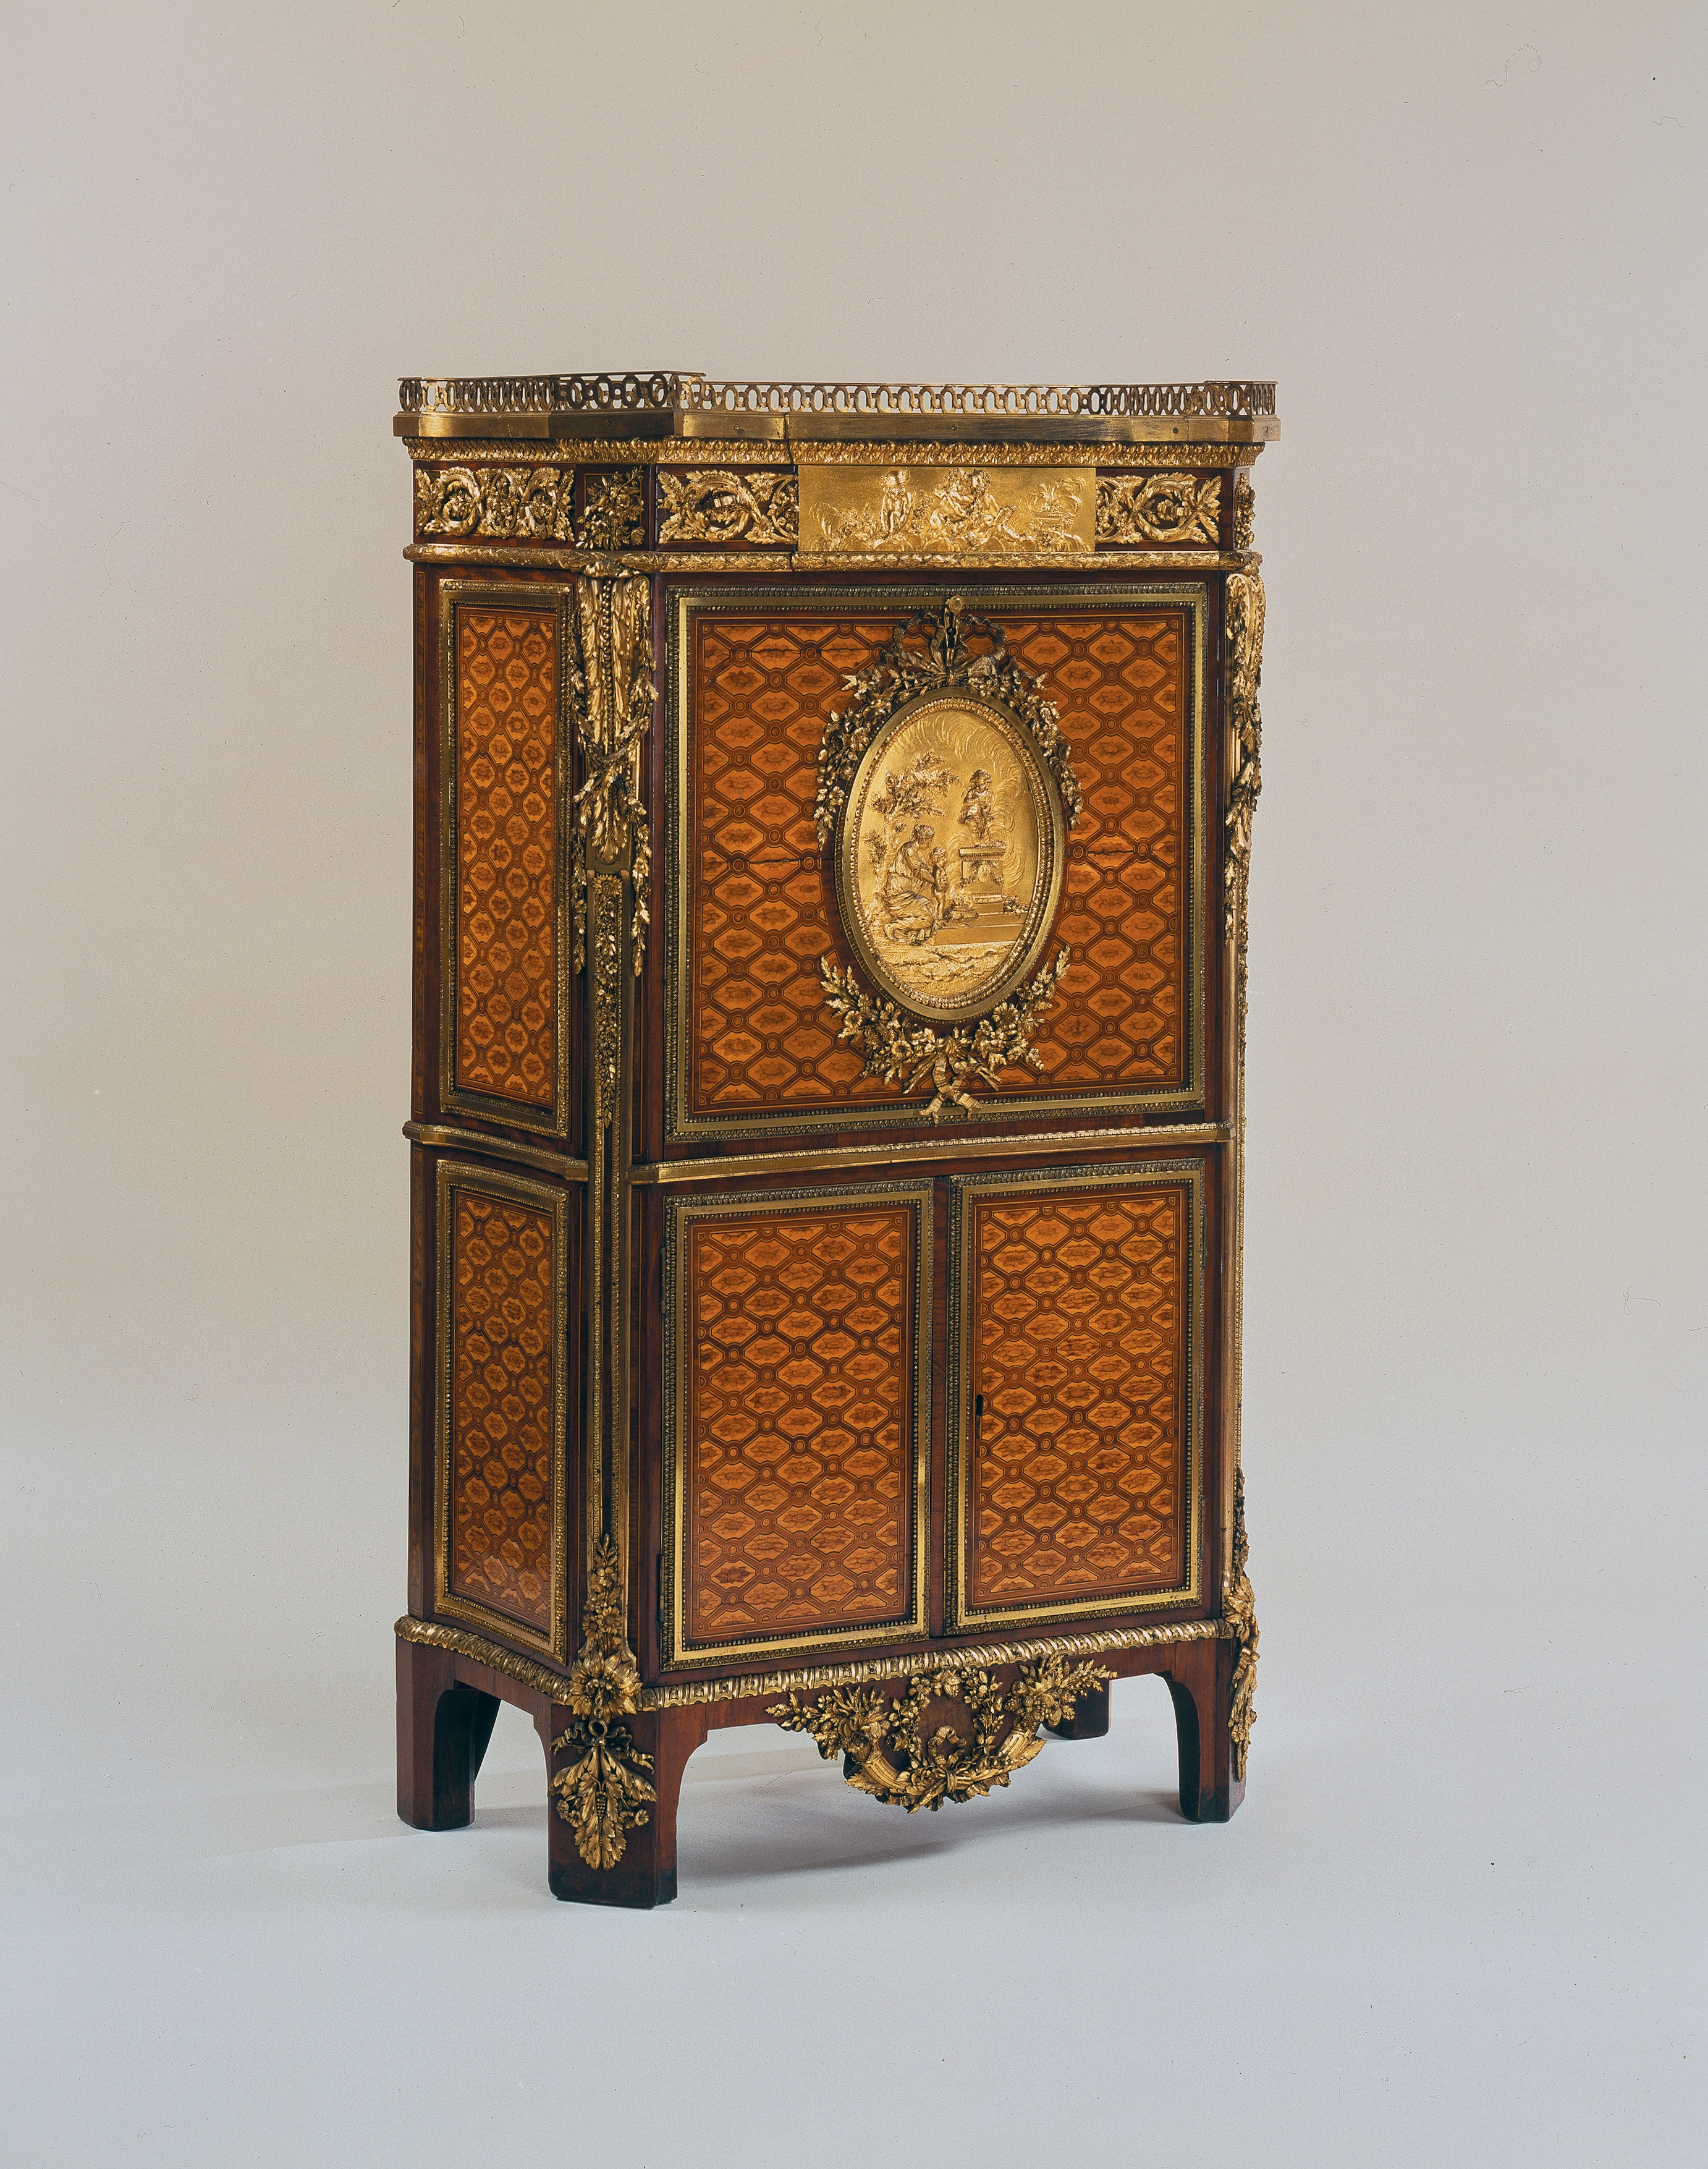 Secretaire, Jean-Henri Riesnener, Oak veneered with satiné, sycamore, ebony, box, amaranth, burr walnut and tulipwood; Carrara marble, gilt bronze, leather and brass, 139.6 x 80.5 x 42 cm, 1783 (London: The Wallace Collection, Object No. F302), image courtesy of The Wallace Collection